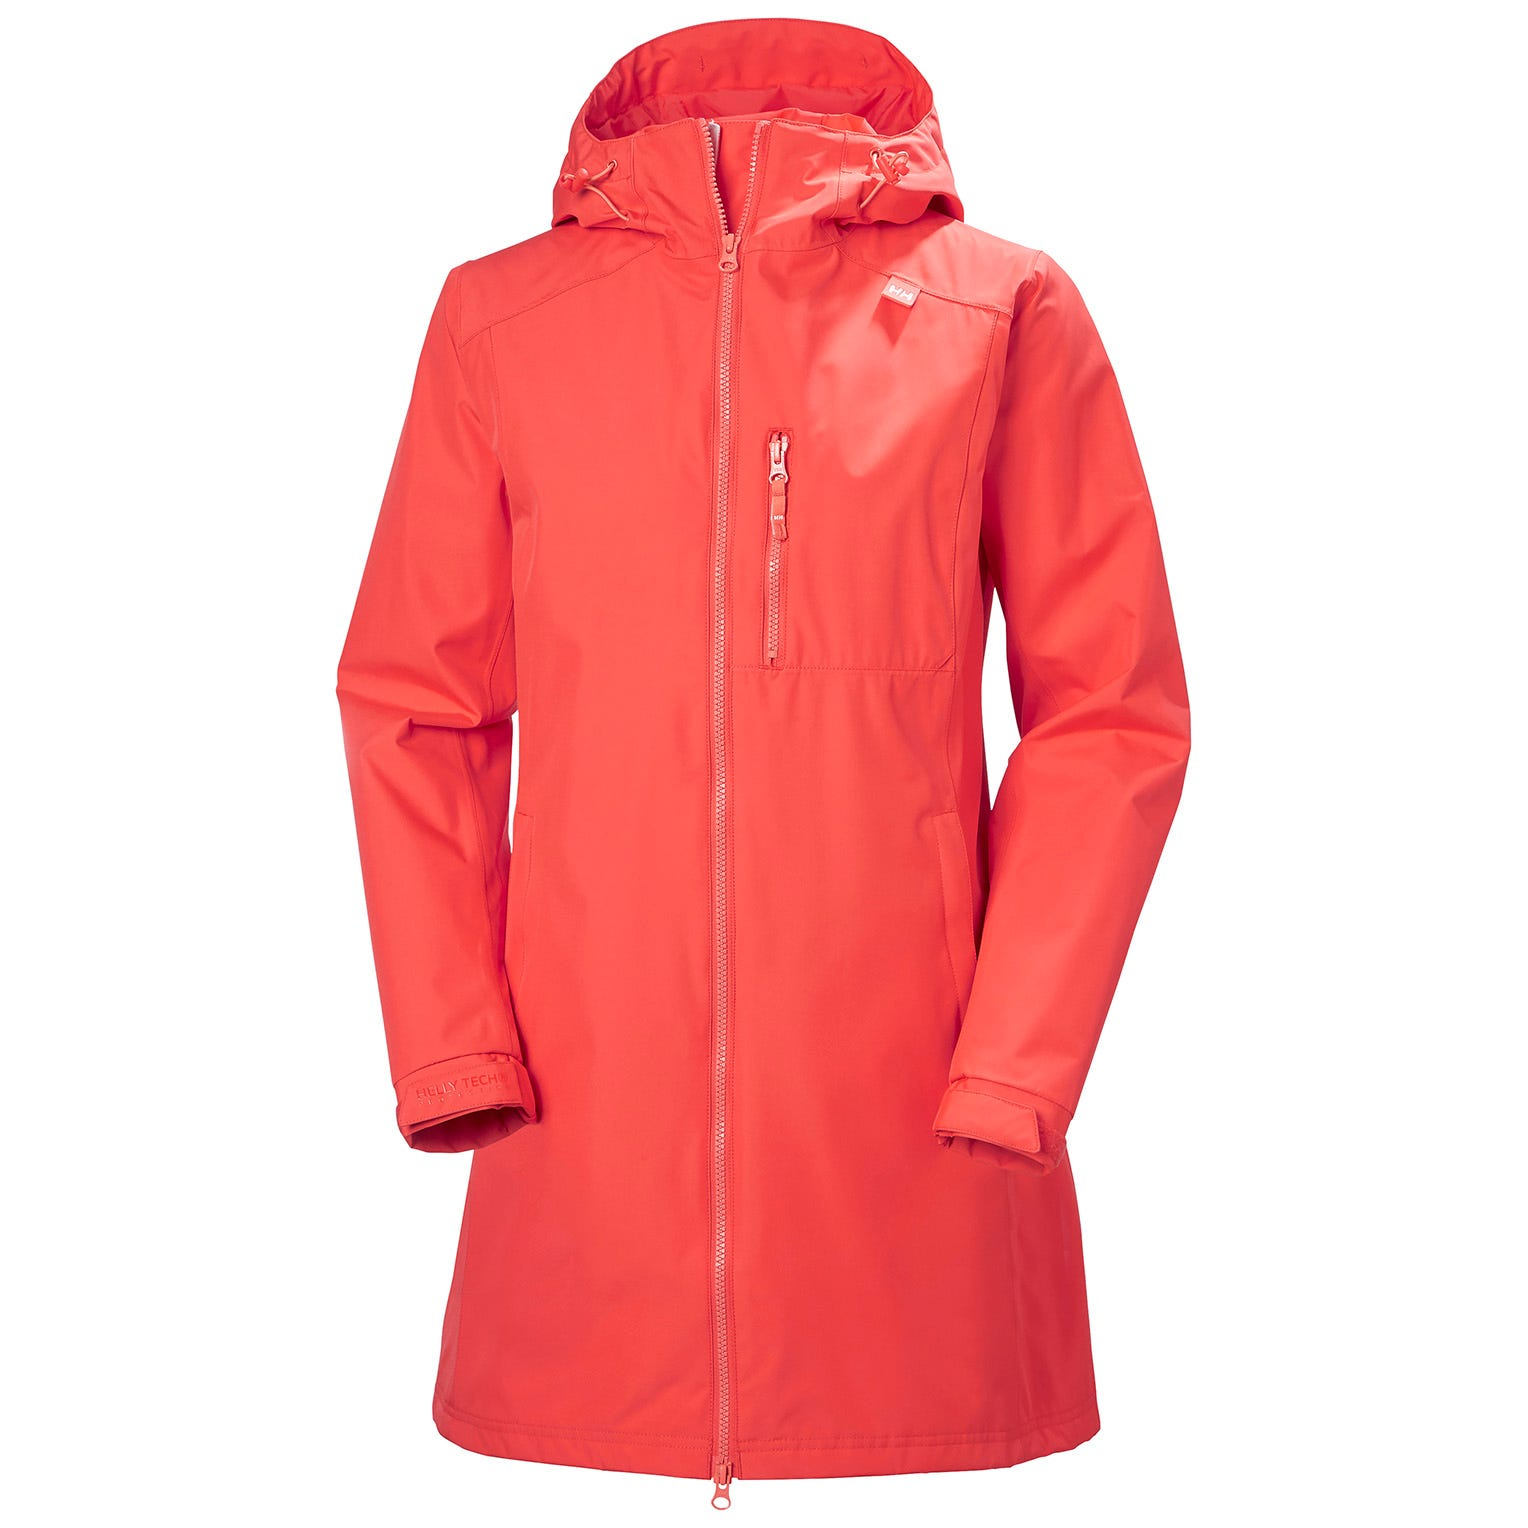 Womens Long Belfast 3/4 Length Rain Jacket | Helly Hansen Womens M